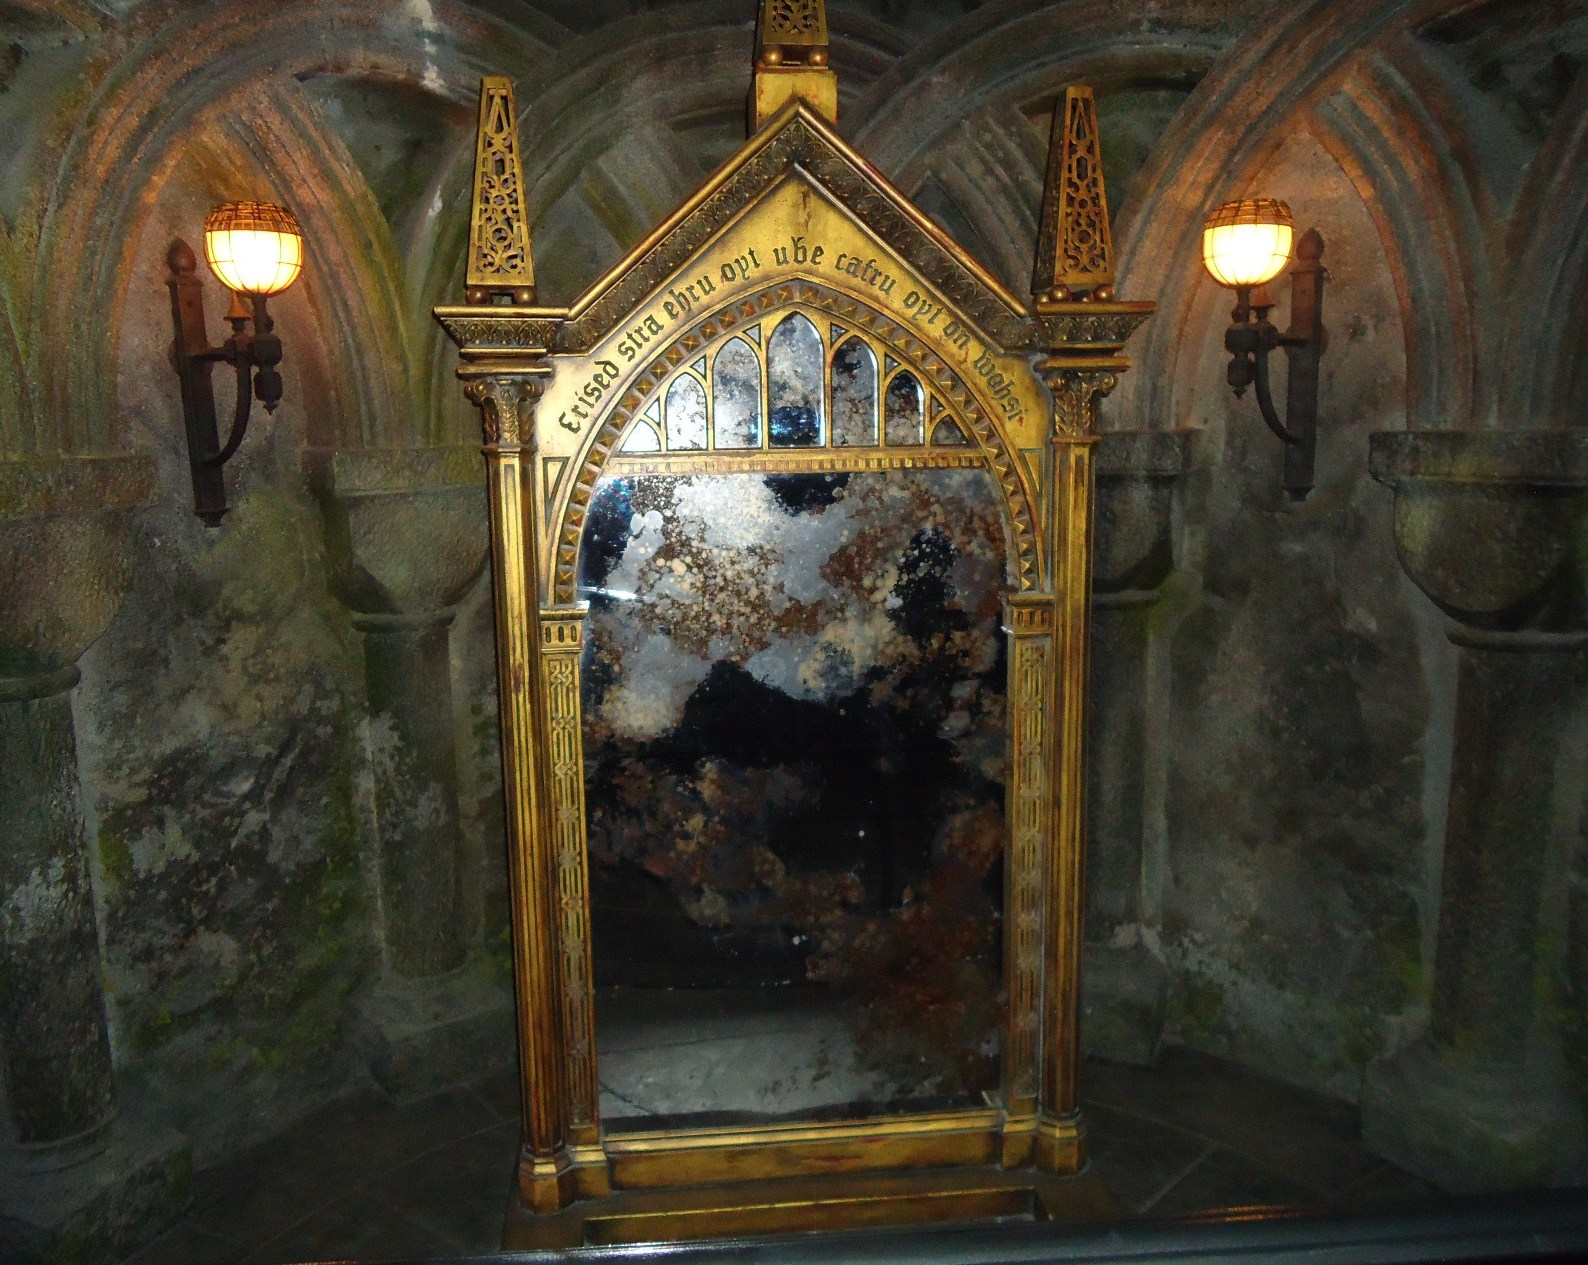 Le miroir du ris d pottermoremania for Le miroir des courtisanes